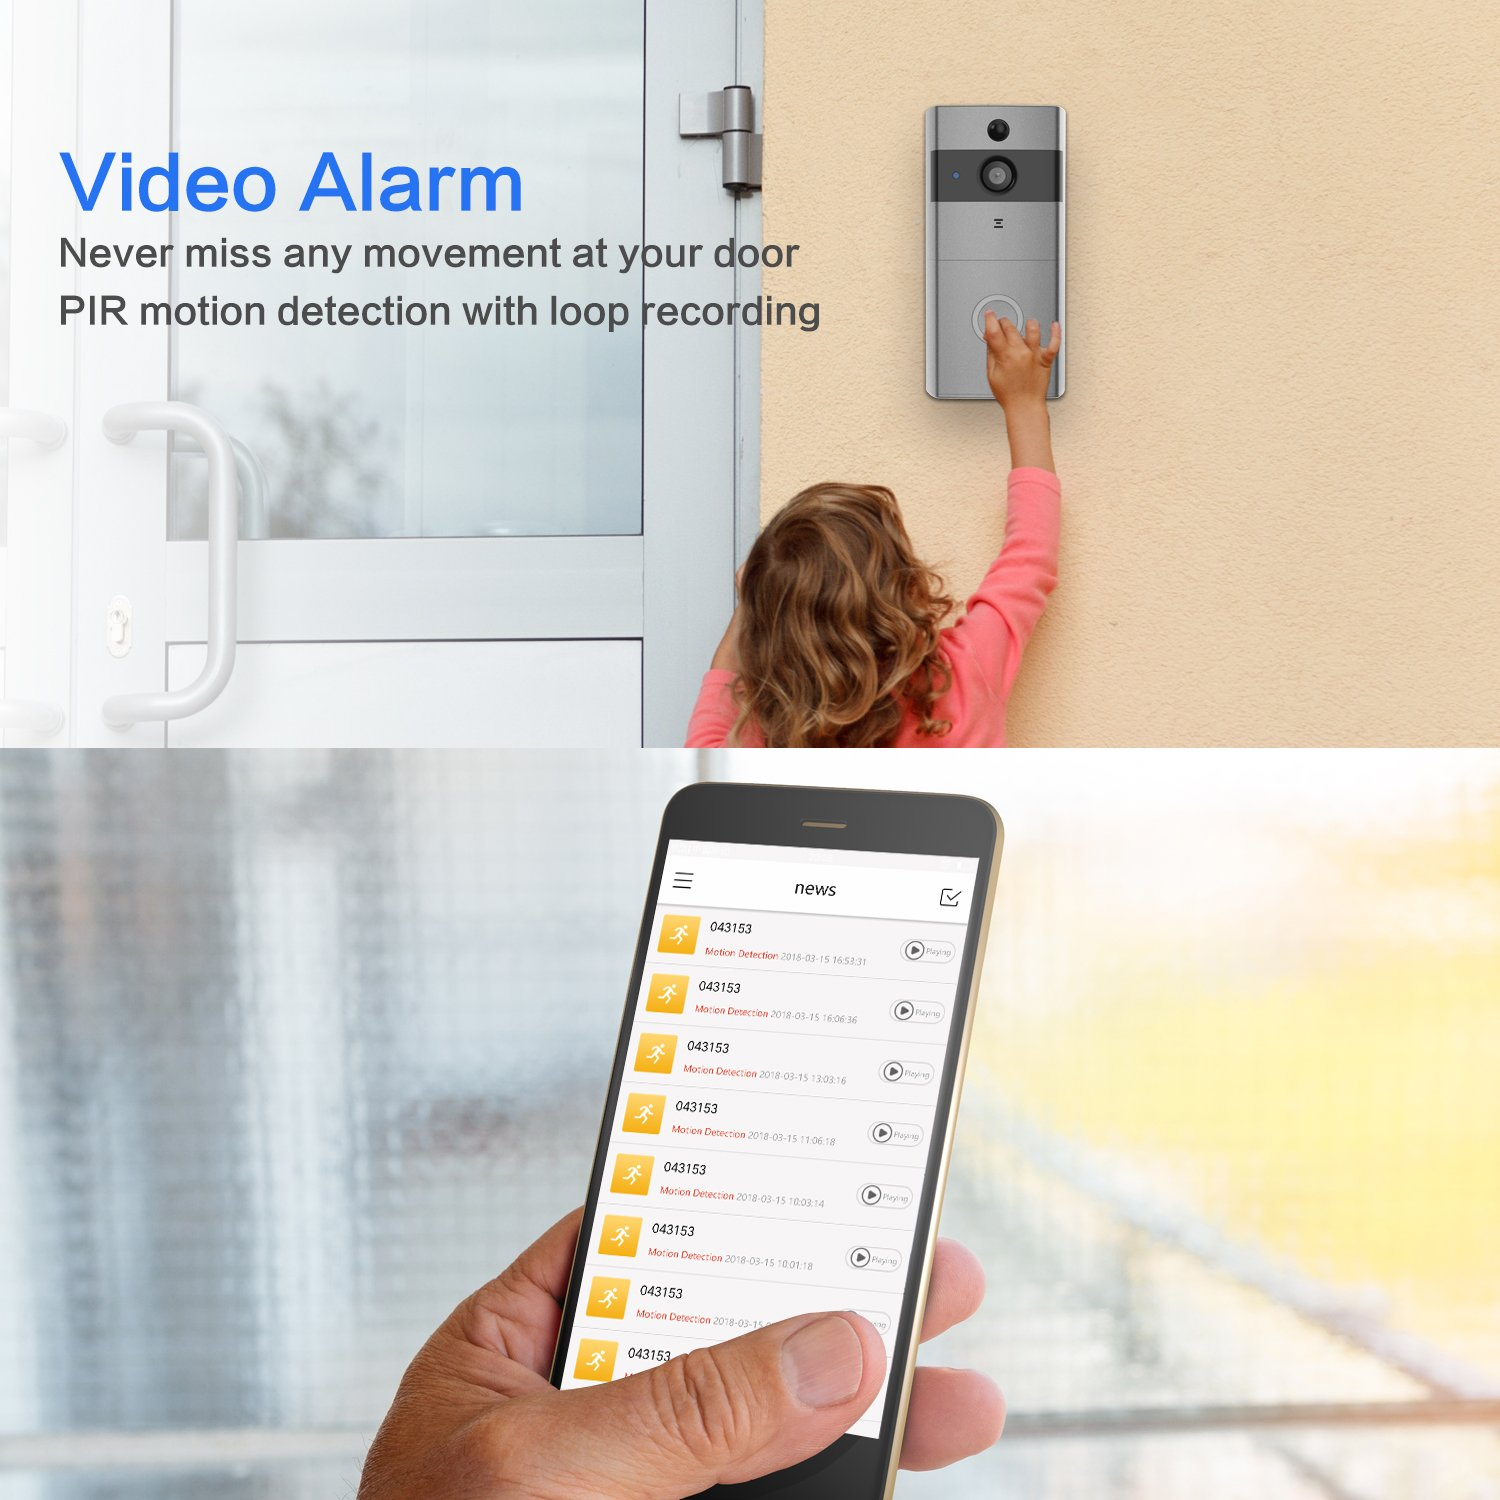 Video Doorbell, Safevant Wi-Fi Doorbell Camera 720P HD Home Security Camera with Two-Way Talk & Video,Infrared Night Vision,PIR Motion Detection Wireless Doorbell for iOS and Android Smart Phone by SAFEVANT (Image #5)